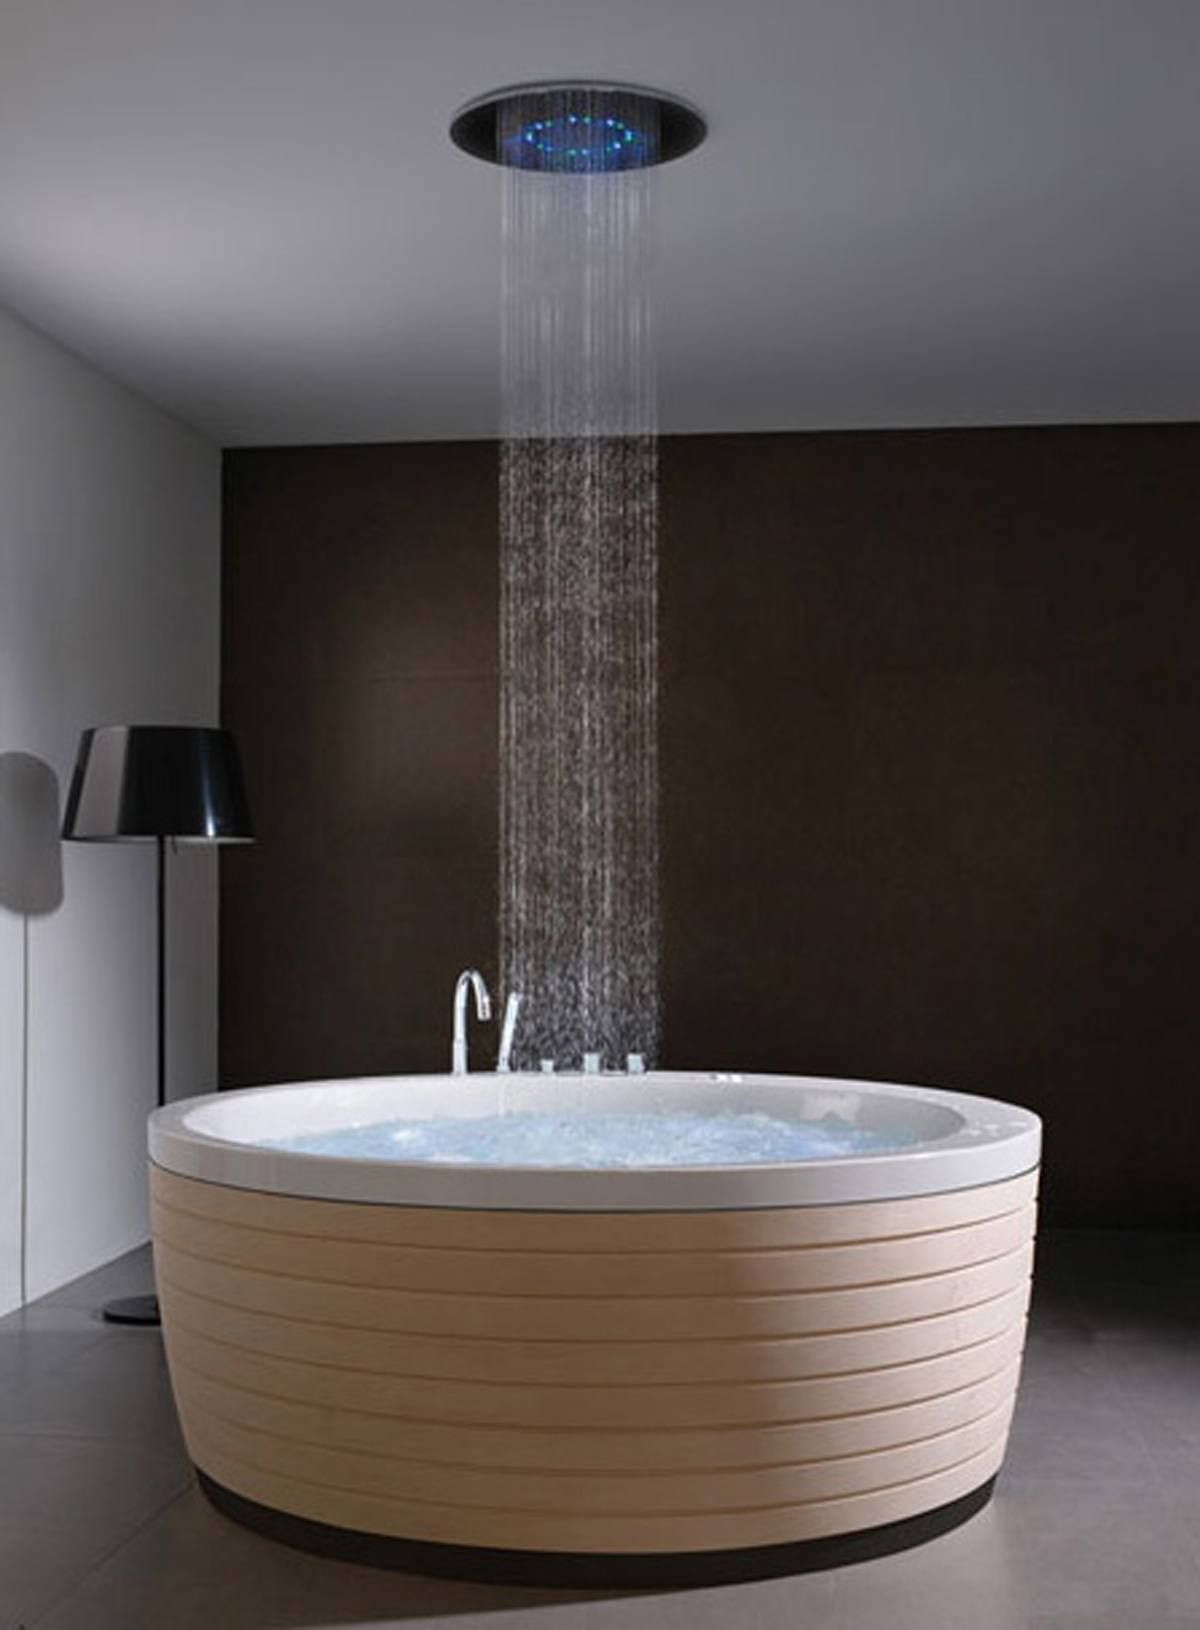 15 Incredible Freestanding Tubs With Showers | free standing tub ...